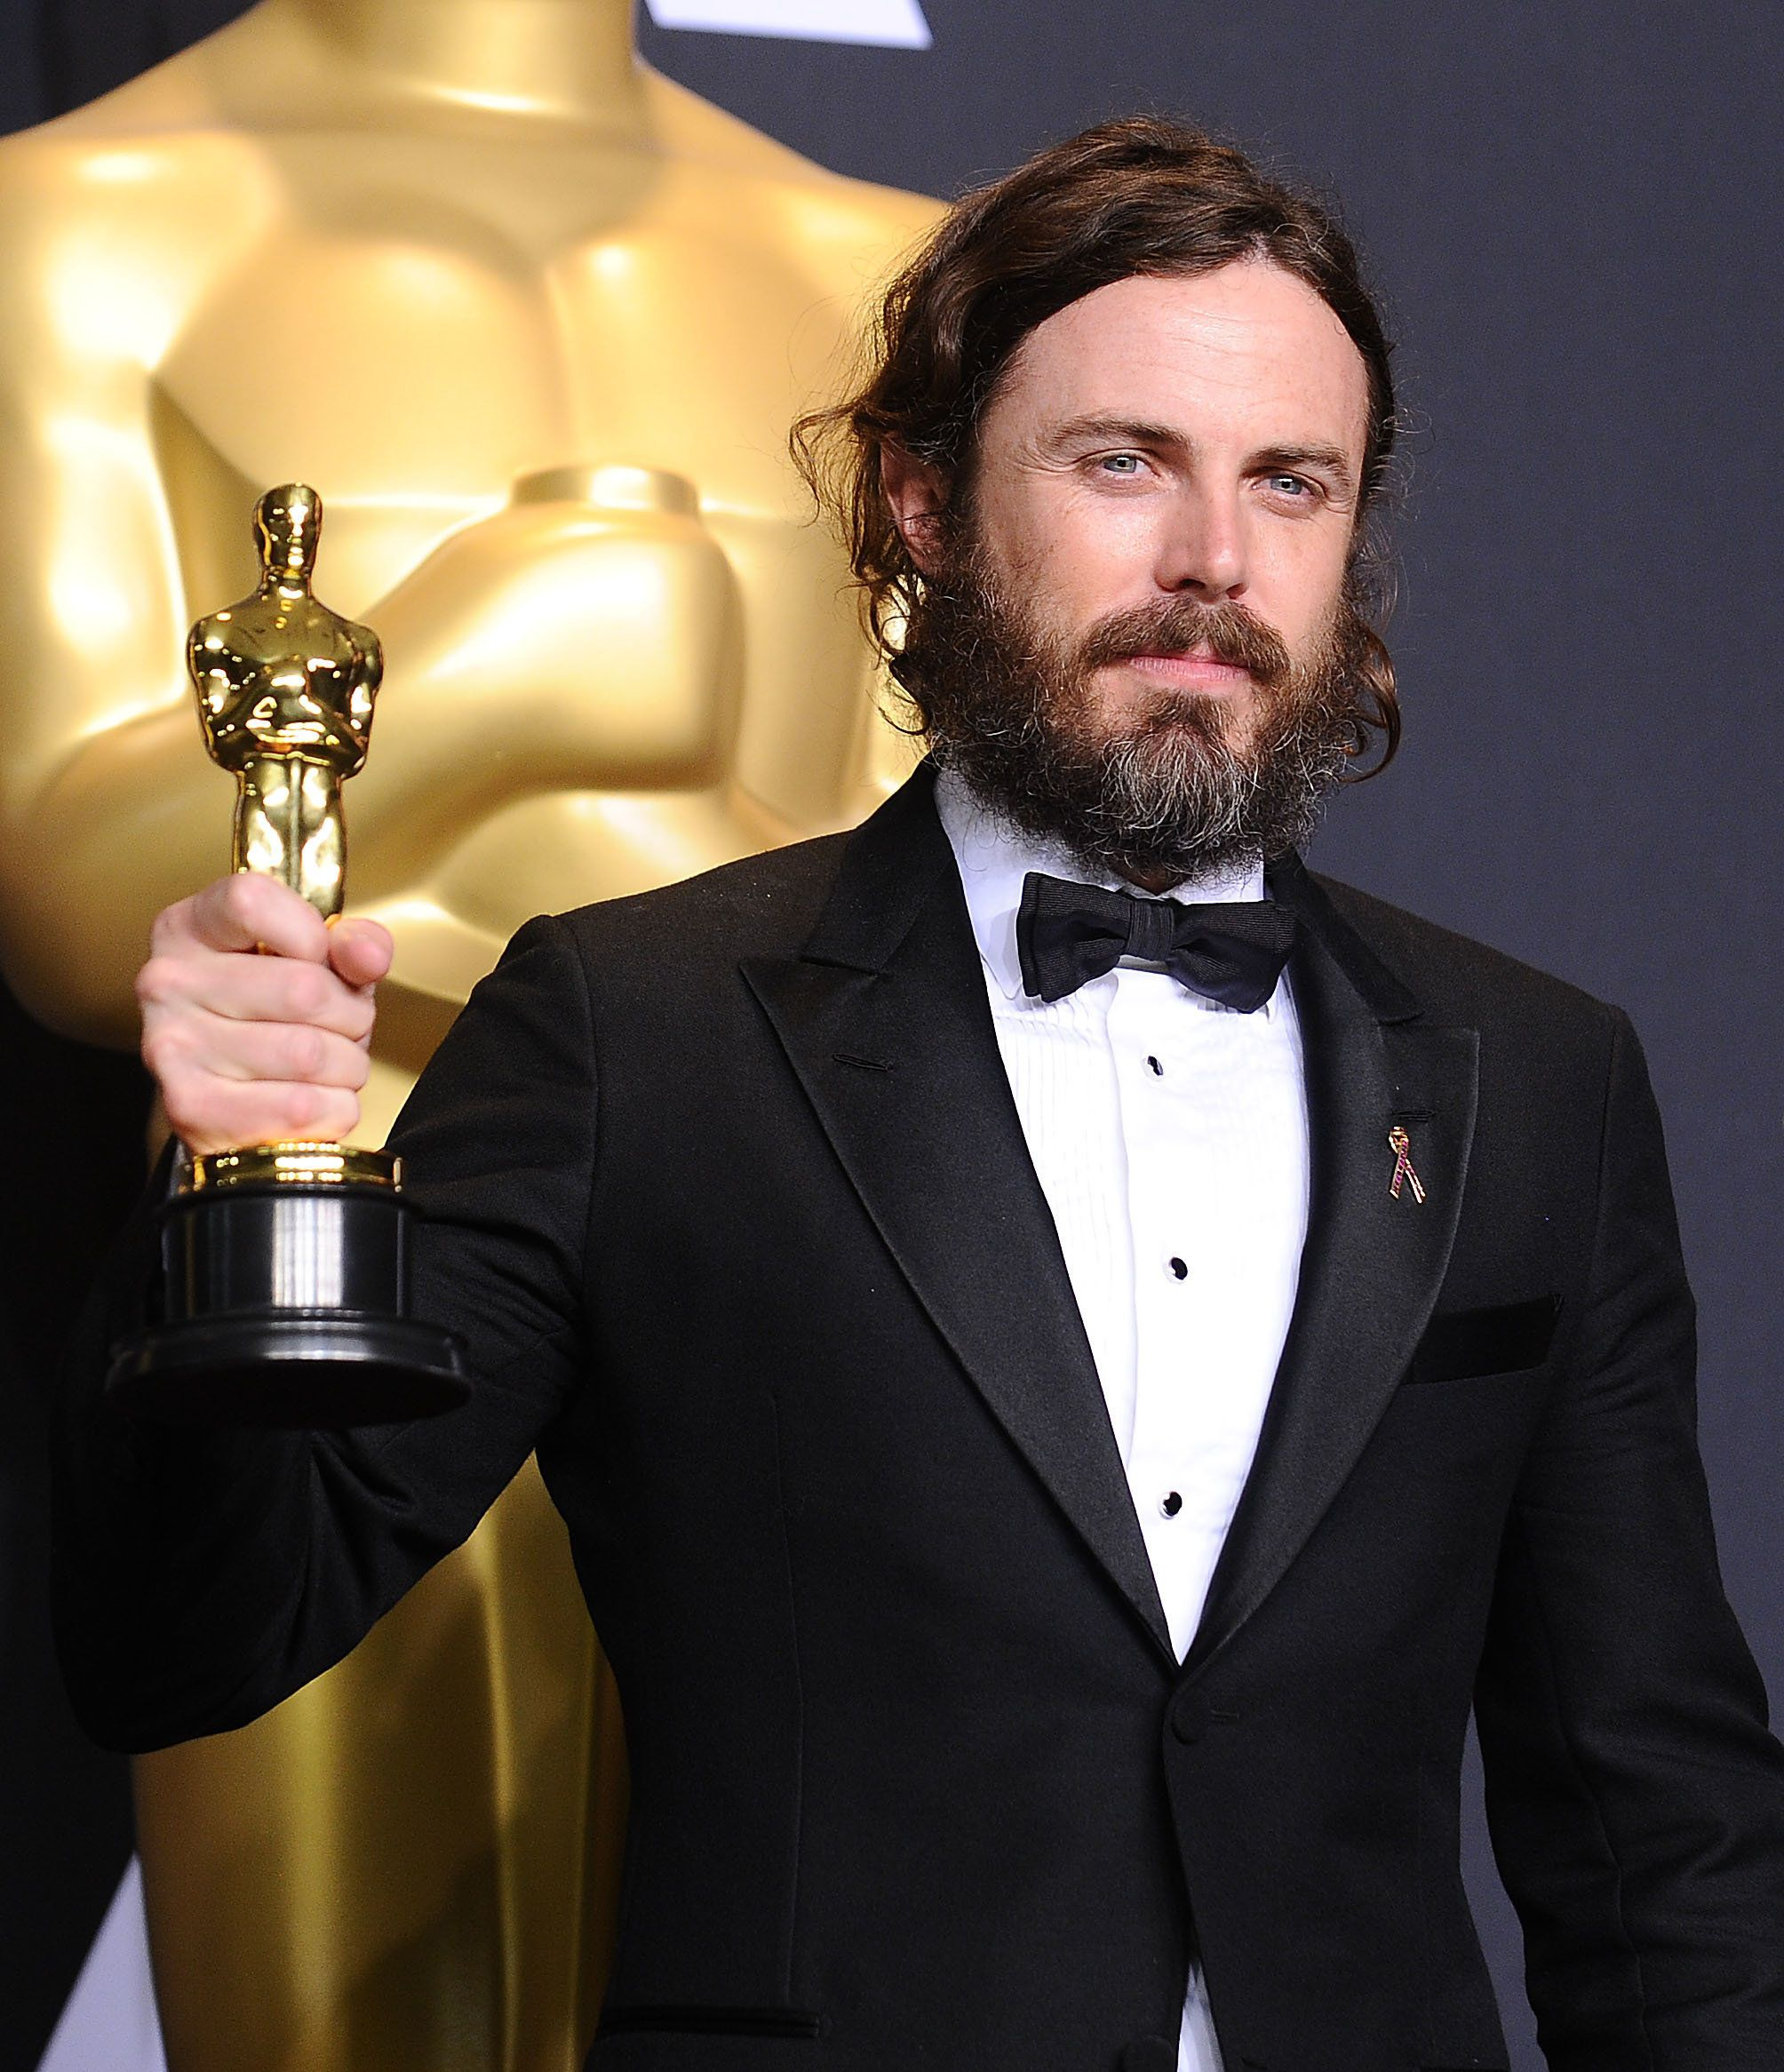 Casey Affleck won't go to the Oscars